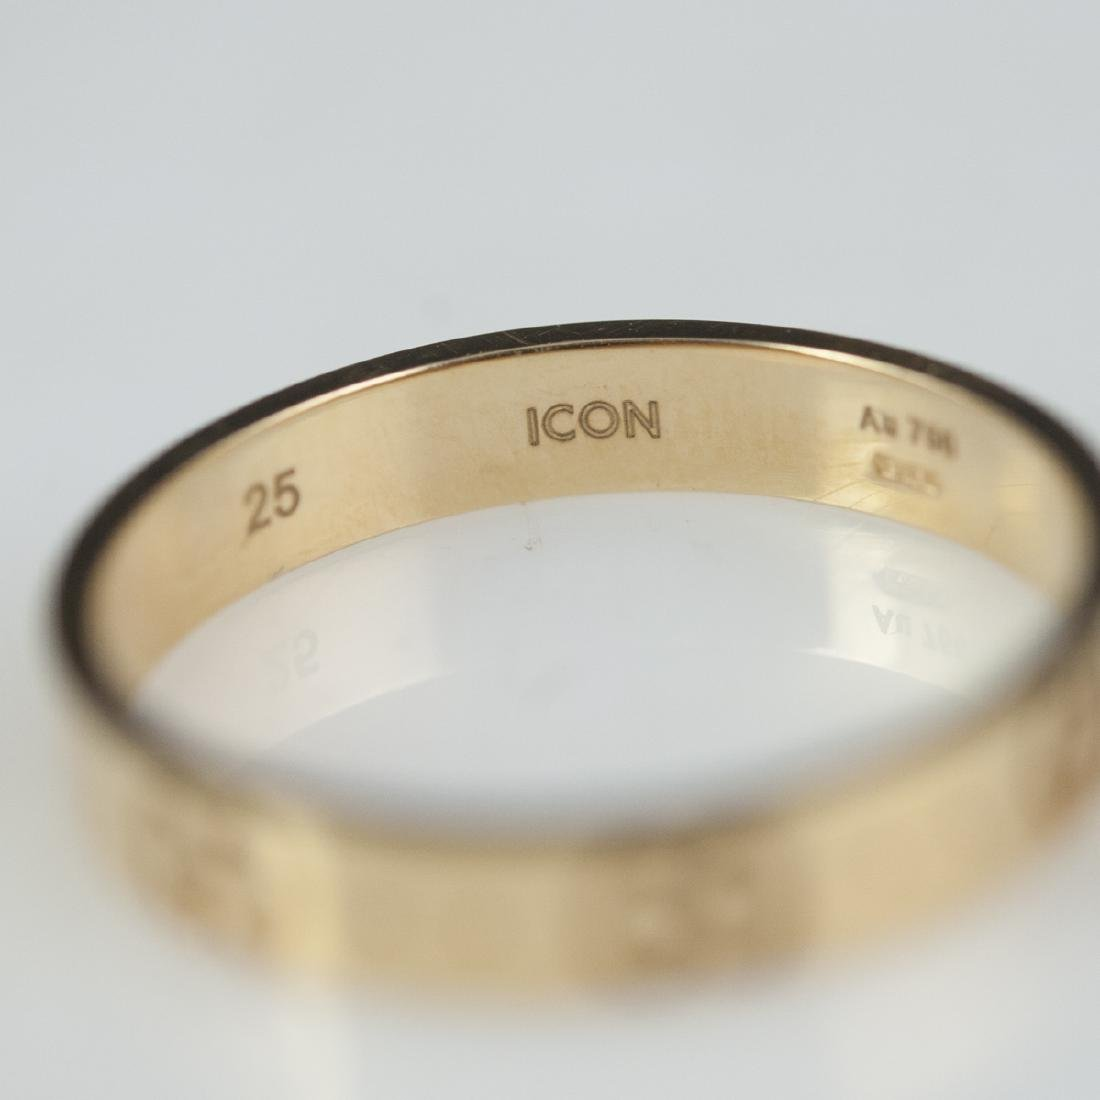 18kt Gucci Icon Ring - 5